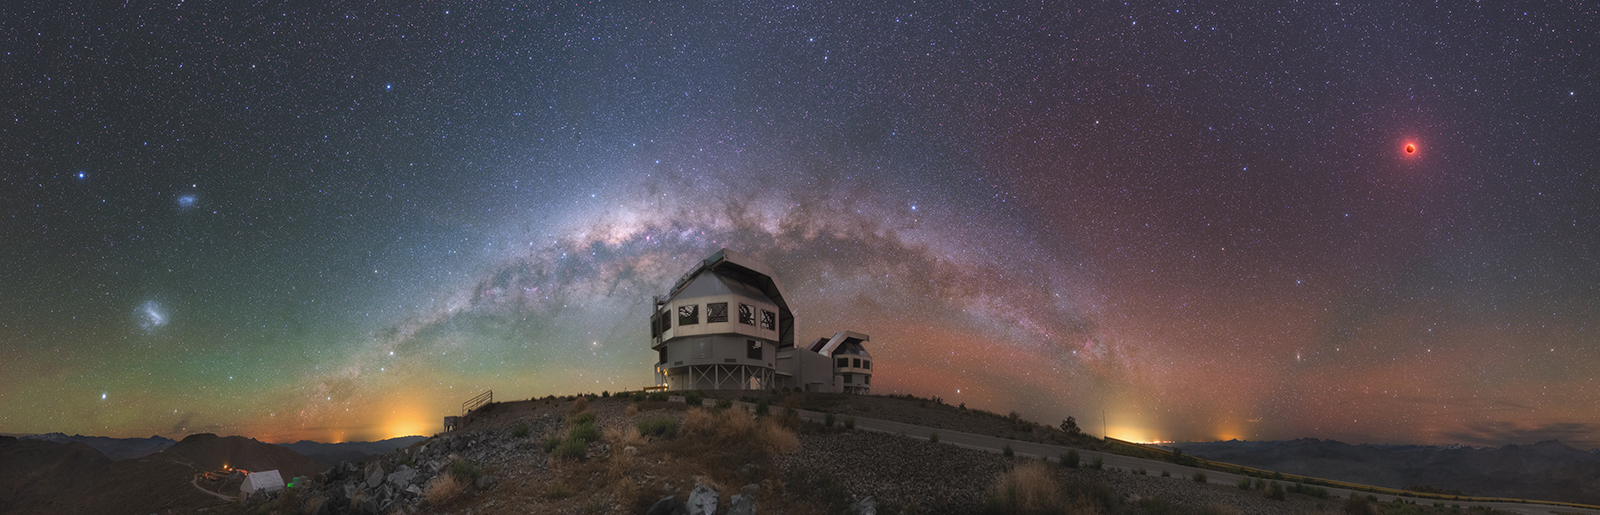 Nightscape panorama of the Magellan telescopes and the Milky Way by Yuri Beletsky